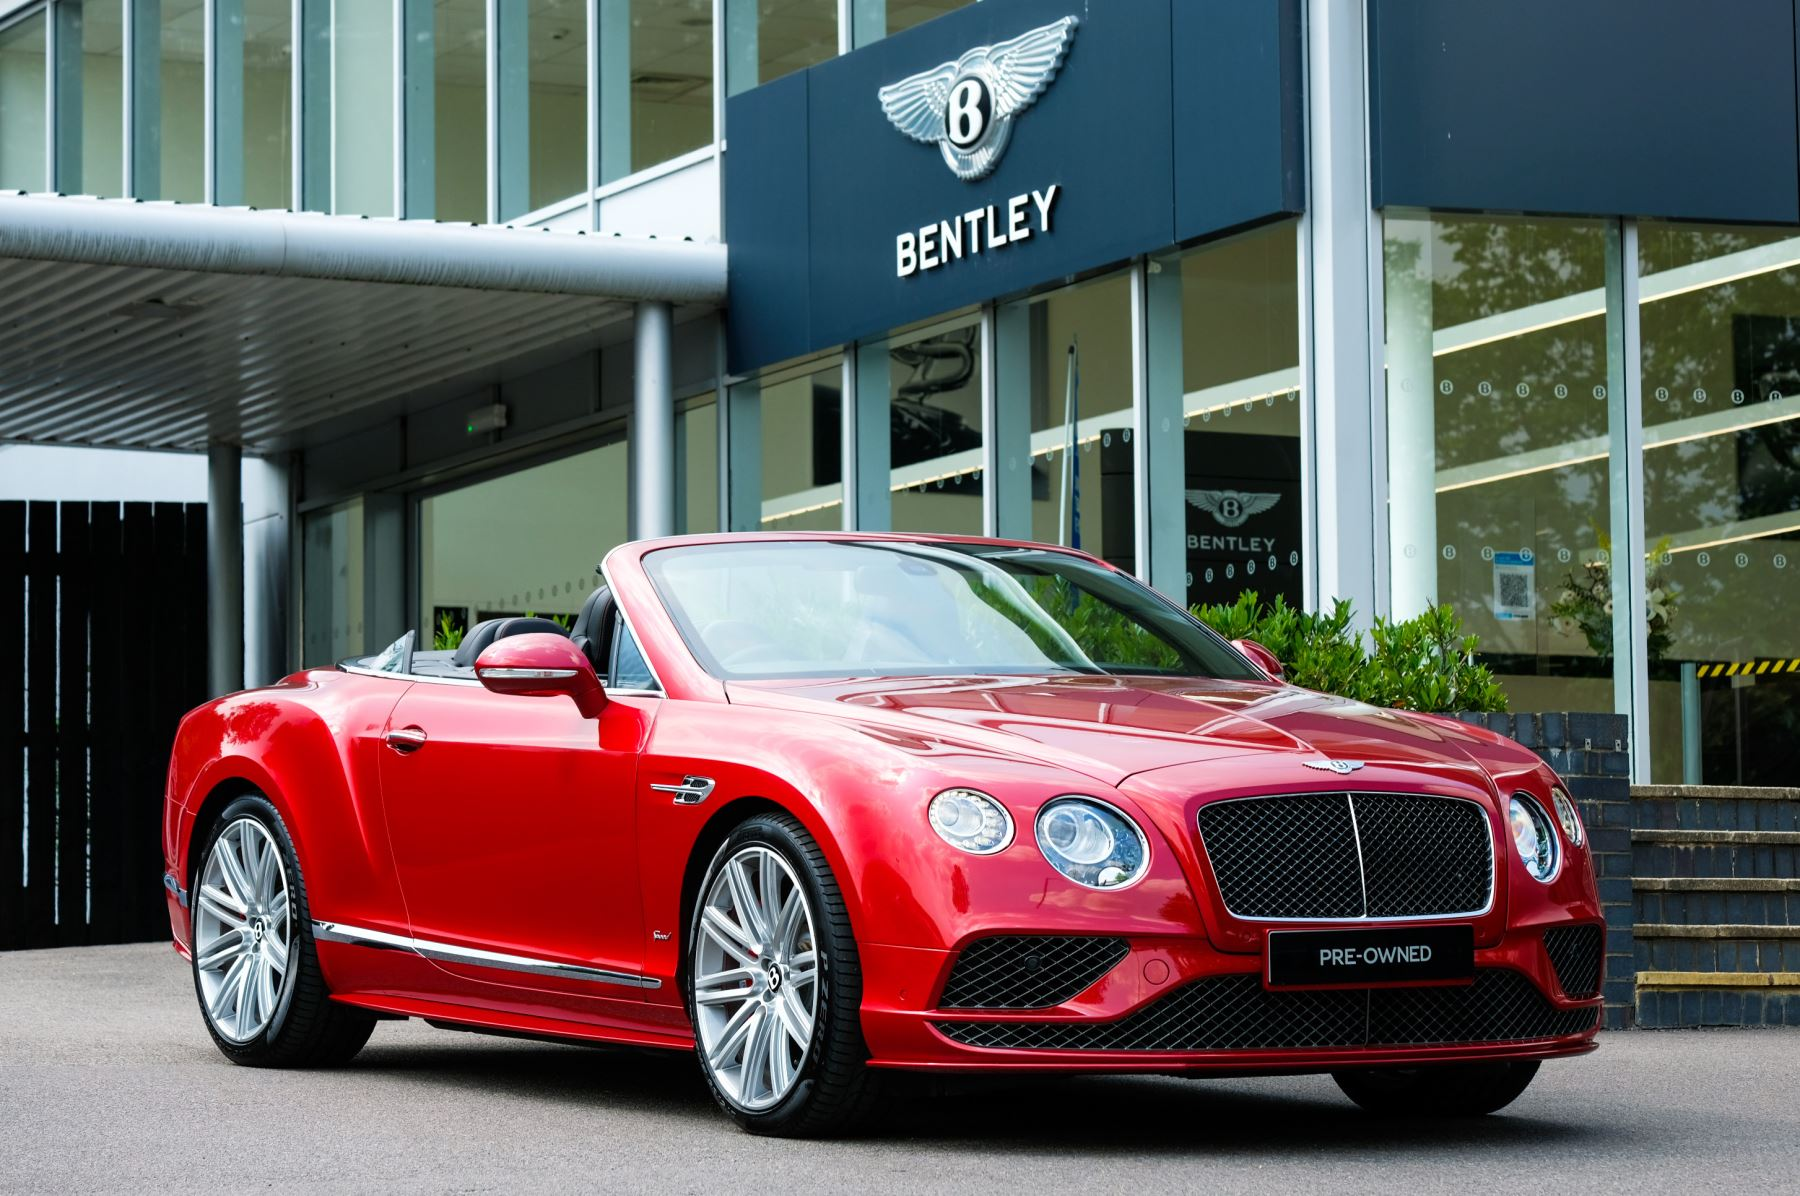 Bentley Continental GTC 6.0 W12 [635] Speed - Ventilated Front Seats with Massage Function Automatic 2 door Convertible